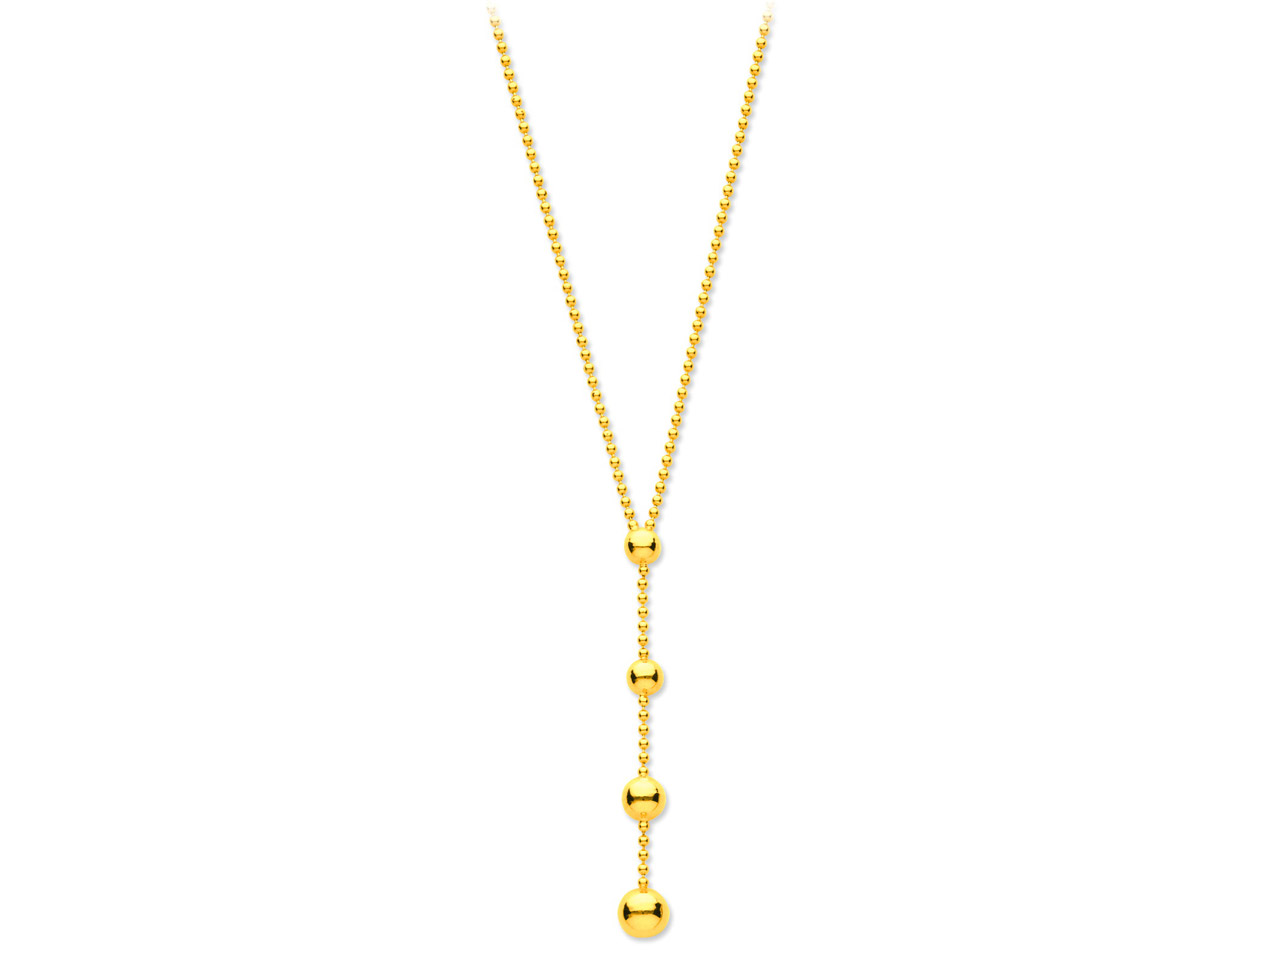 Collier Y boules 1,5 mm, 43 cm, Or jaune 18k